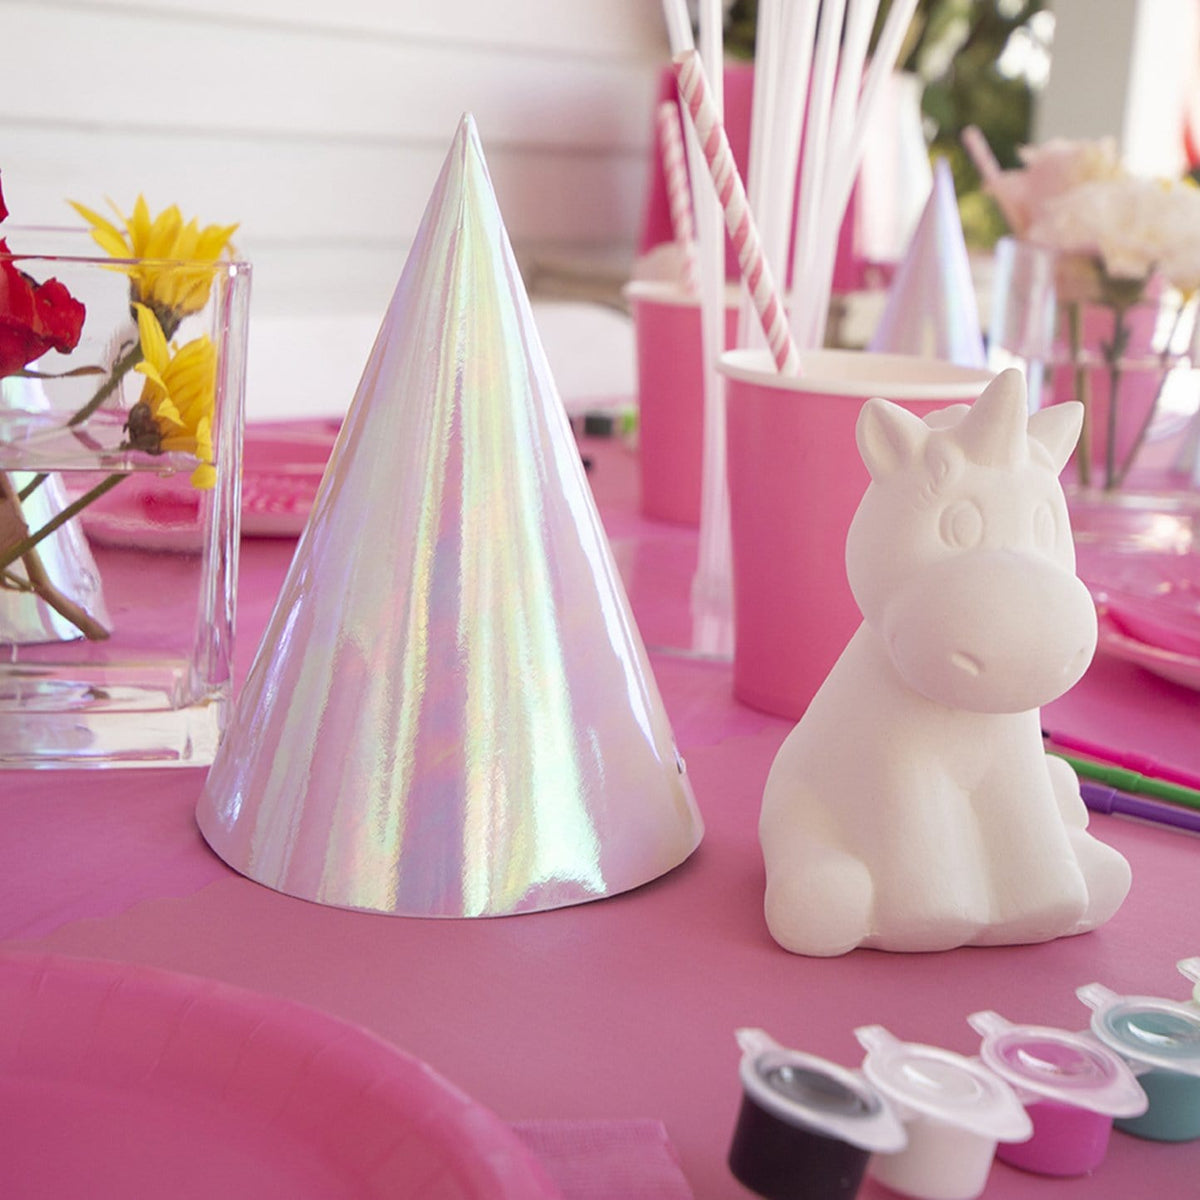 Classic Party:  Pottery + Colorful Party Supplies